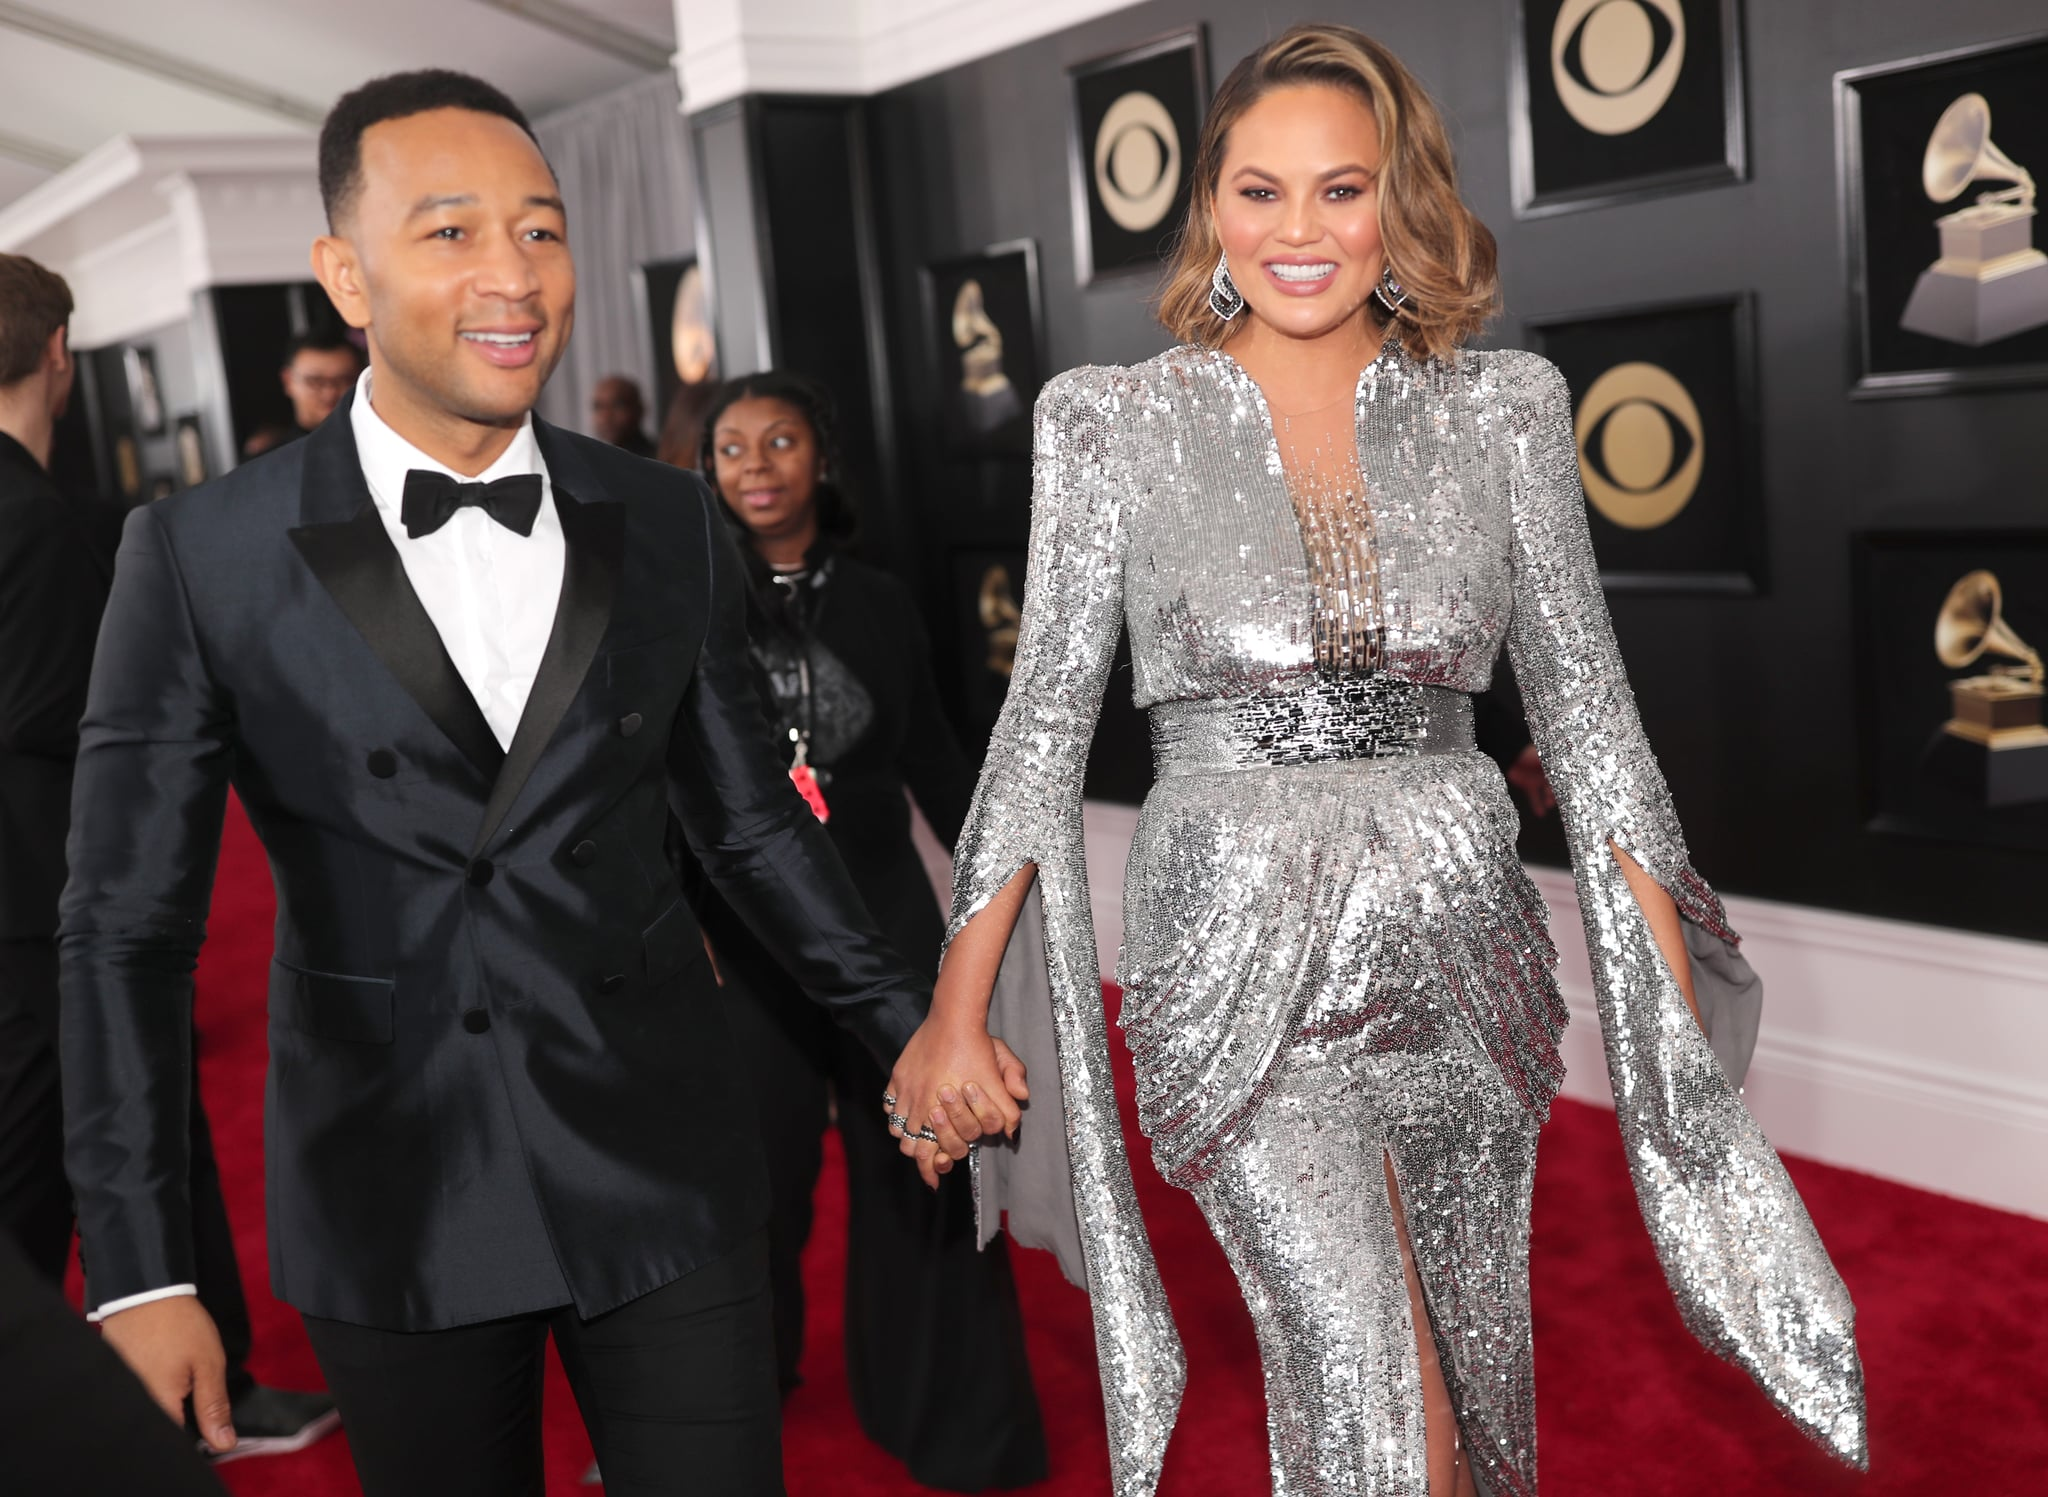 NEW YORK, NY - JANUARY 28:  Recording artist John Legend and model Chrissy Teigen attend the 60th Annual GRAMMY Awards at Madison Square Garden on January 28, 2018 in New York City.  (Photo by Christopher Polk/Getty Images for NARAS)